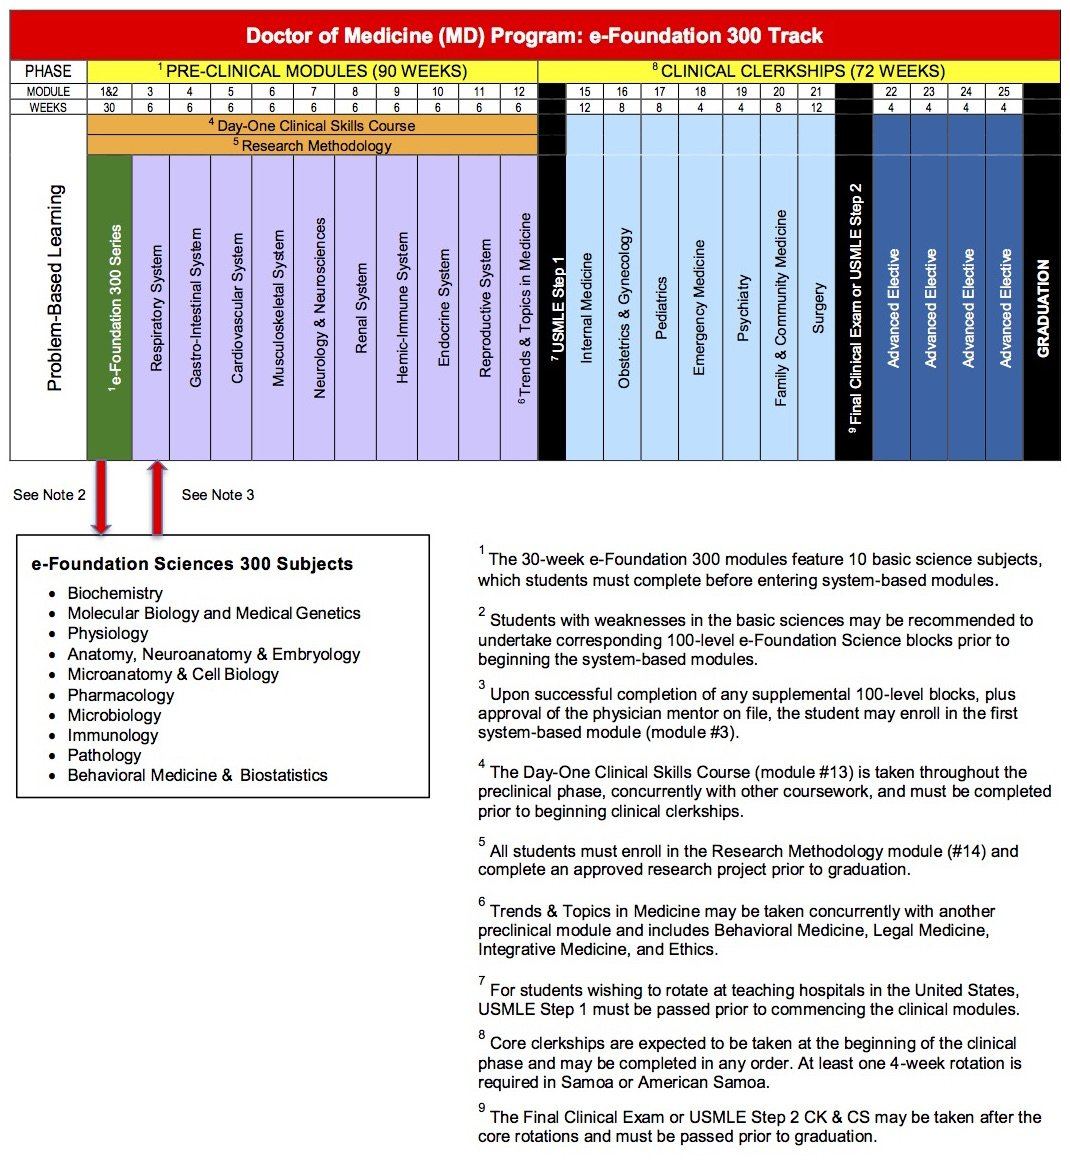 Curriculum Overview Australasia and Beyond – OUM